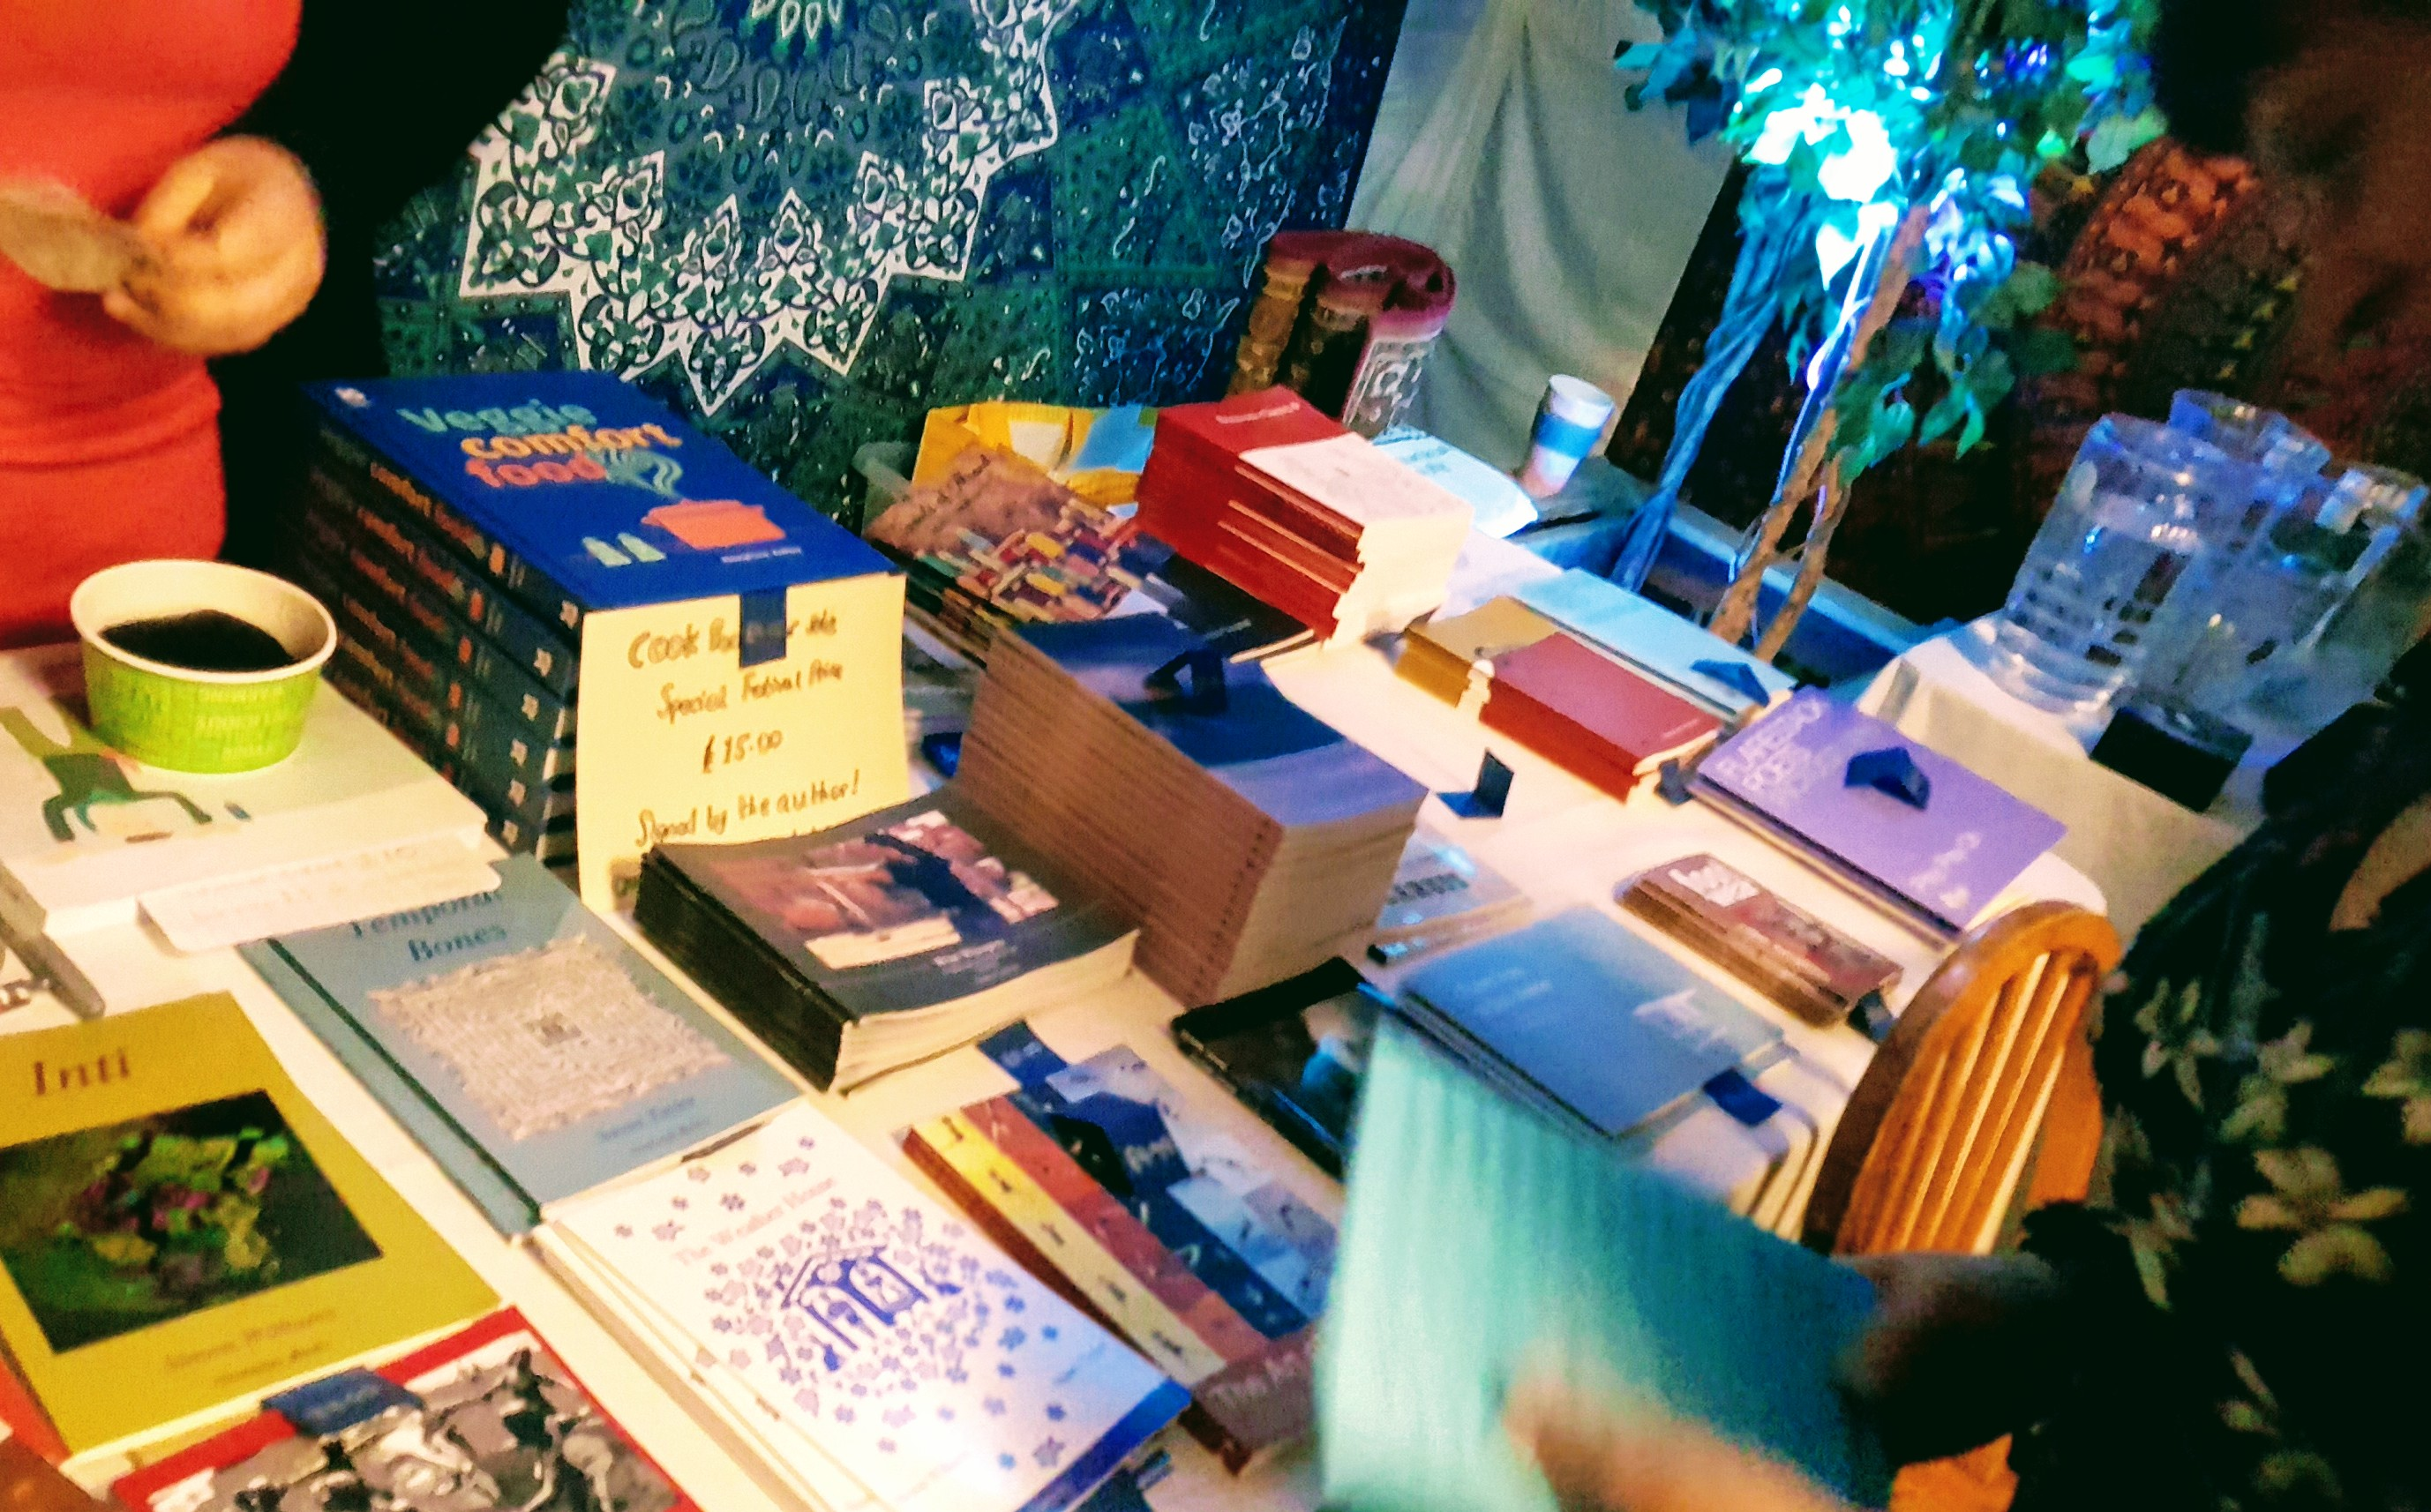 Poetry books for sale